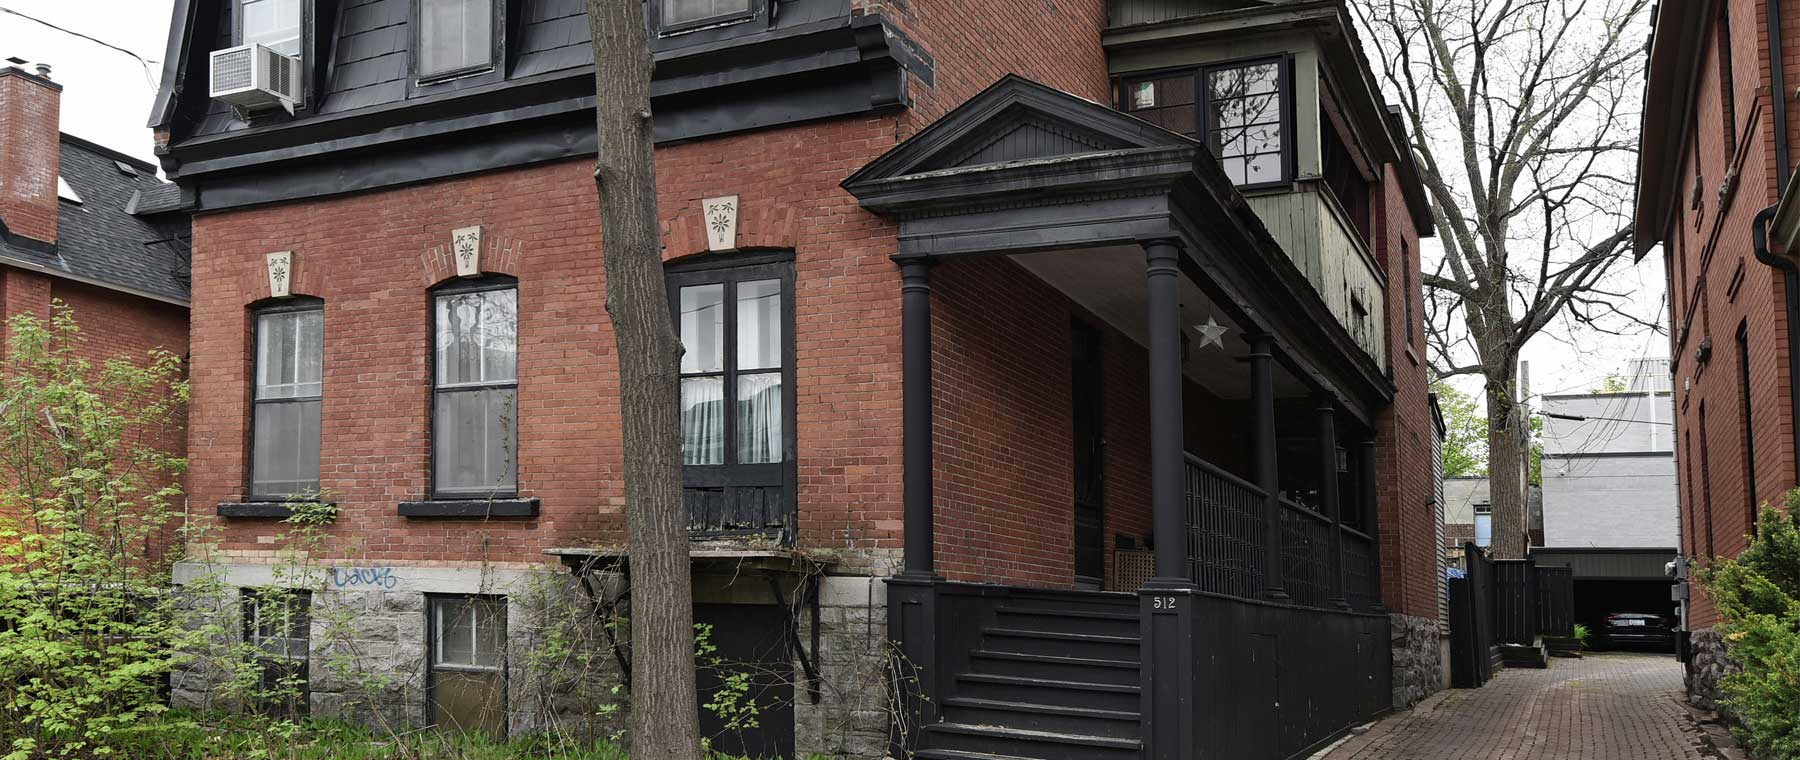 House of the Week: $999,900 for a 140-year-old house in Centretown